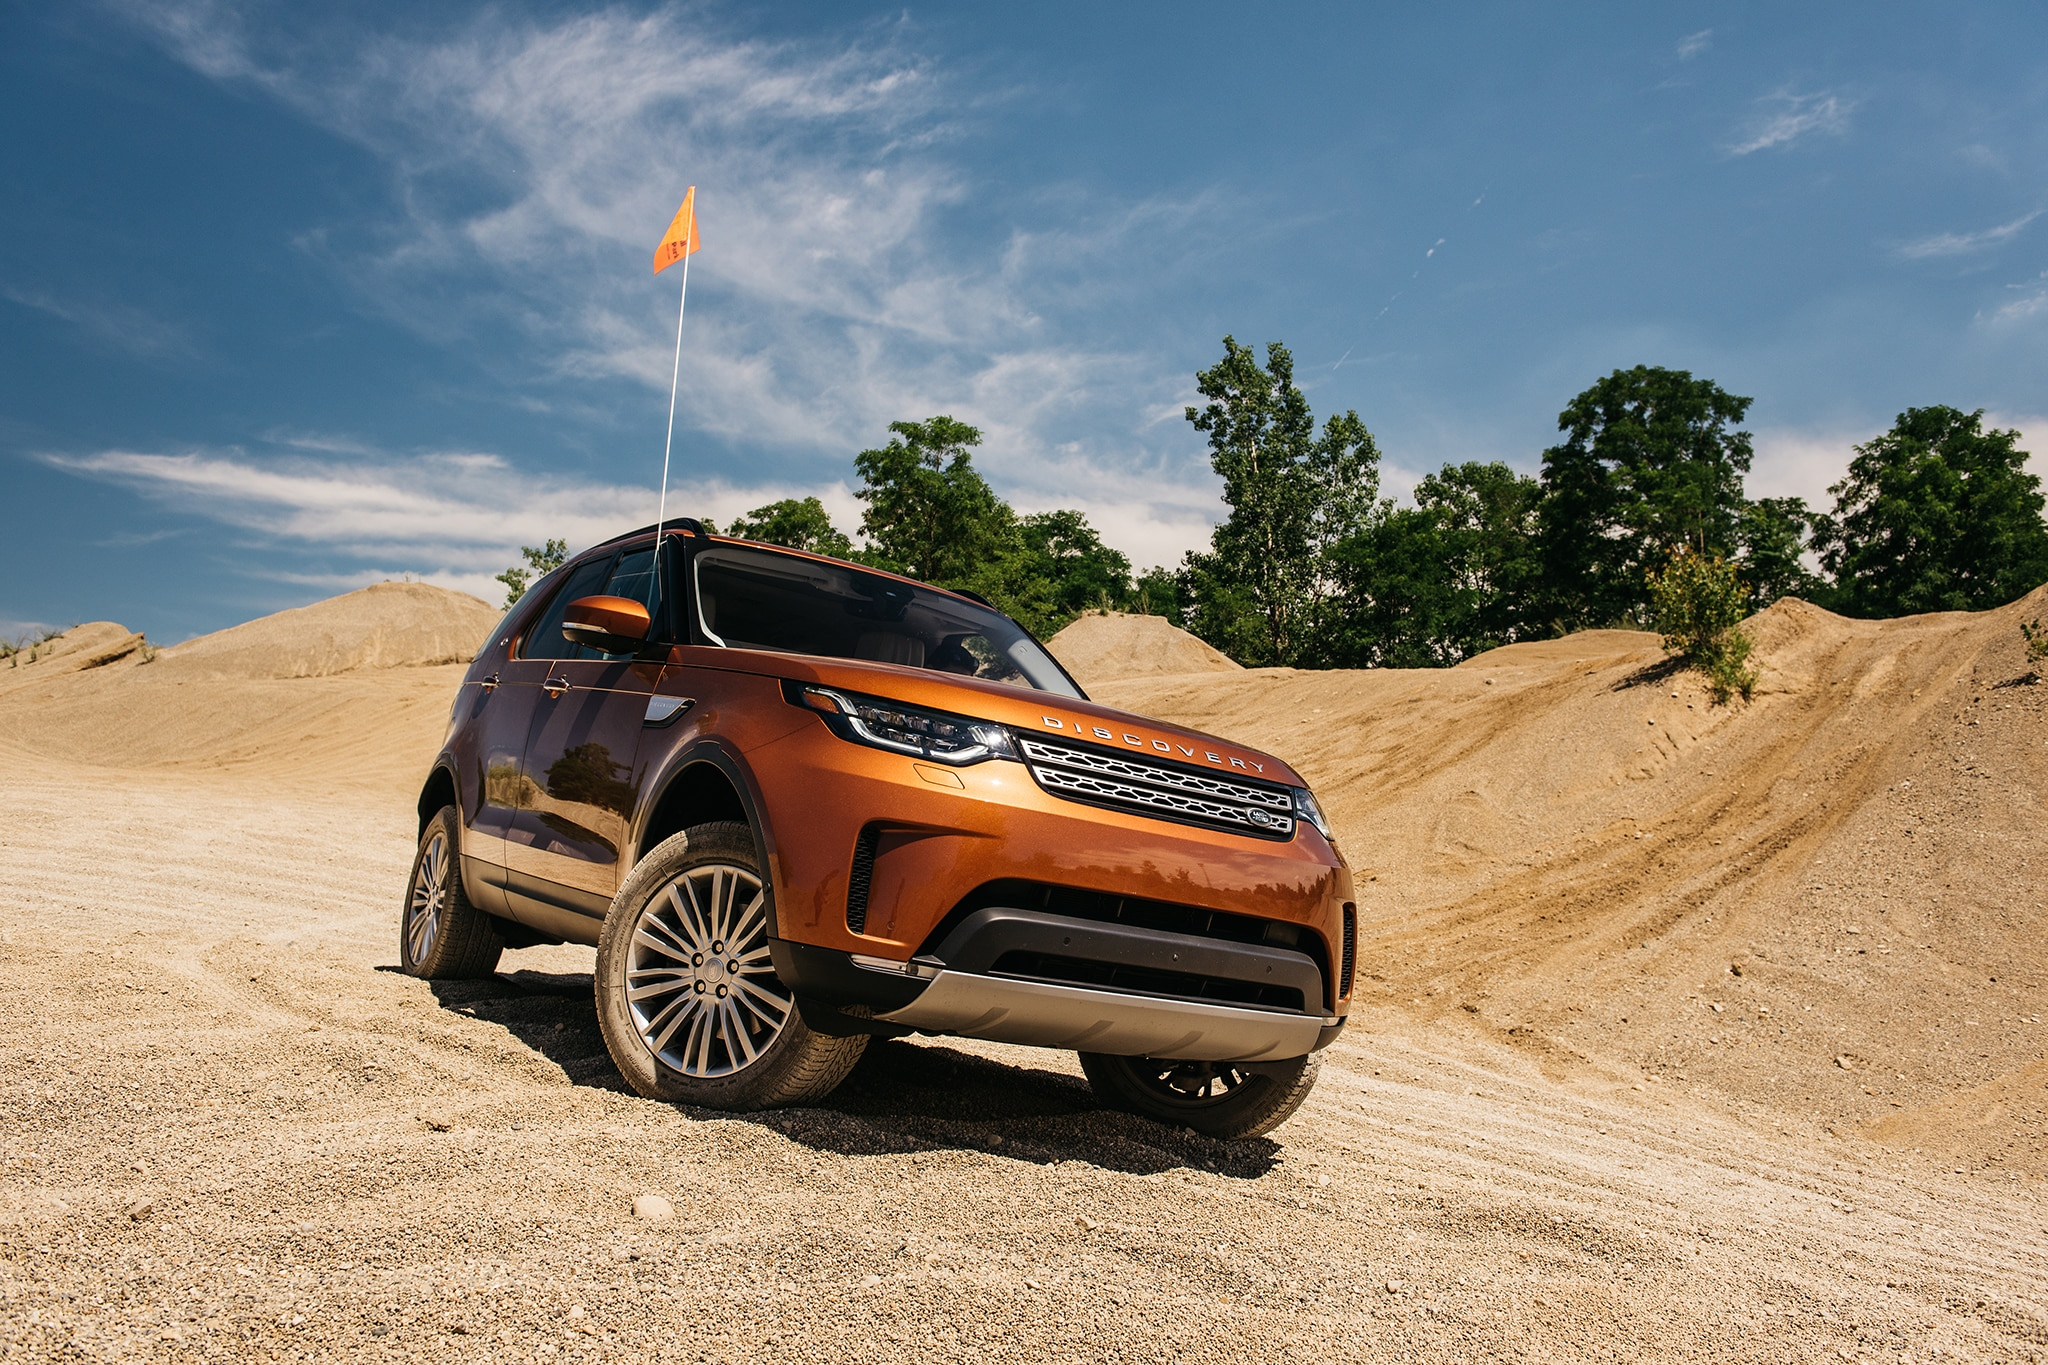 2017 Land Rover Discovery Td6 HSE Front Three Quarter 08